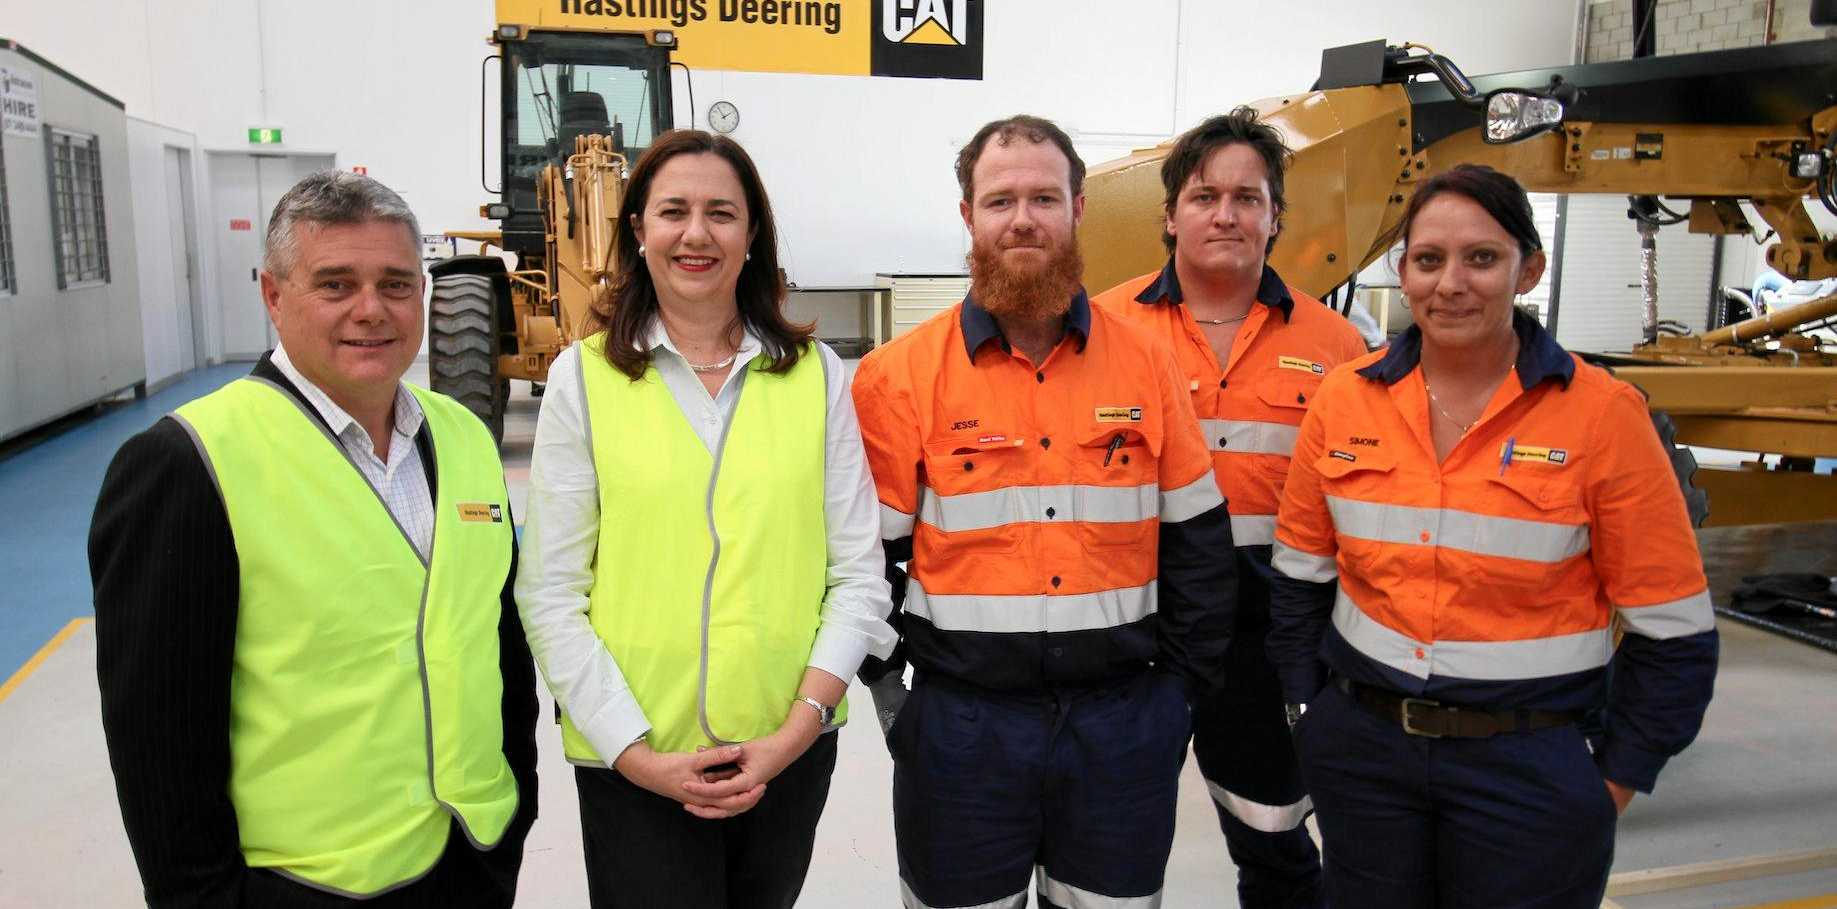 Simone Suradi, right, was one of the Hastings Deering apprentices who met with Premier Annastacia Palaszczuk during a recent visit to Paget.